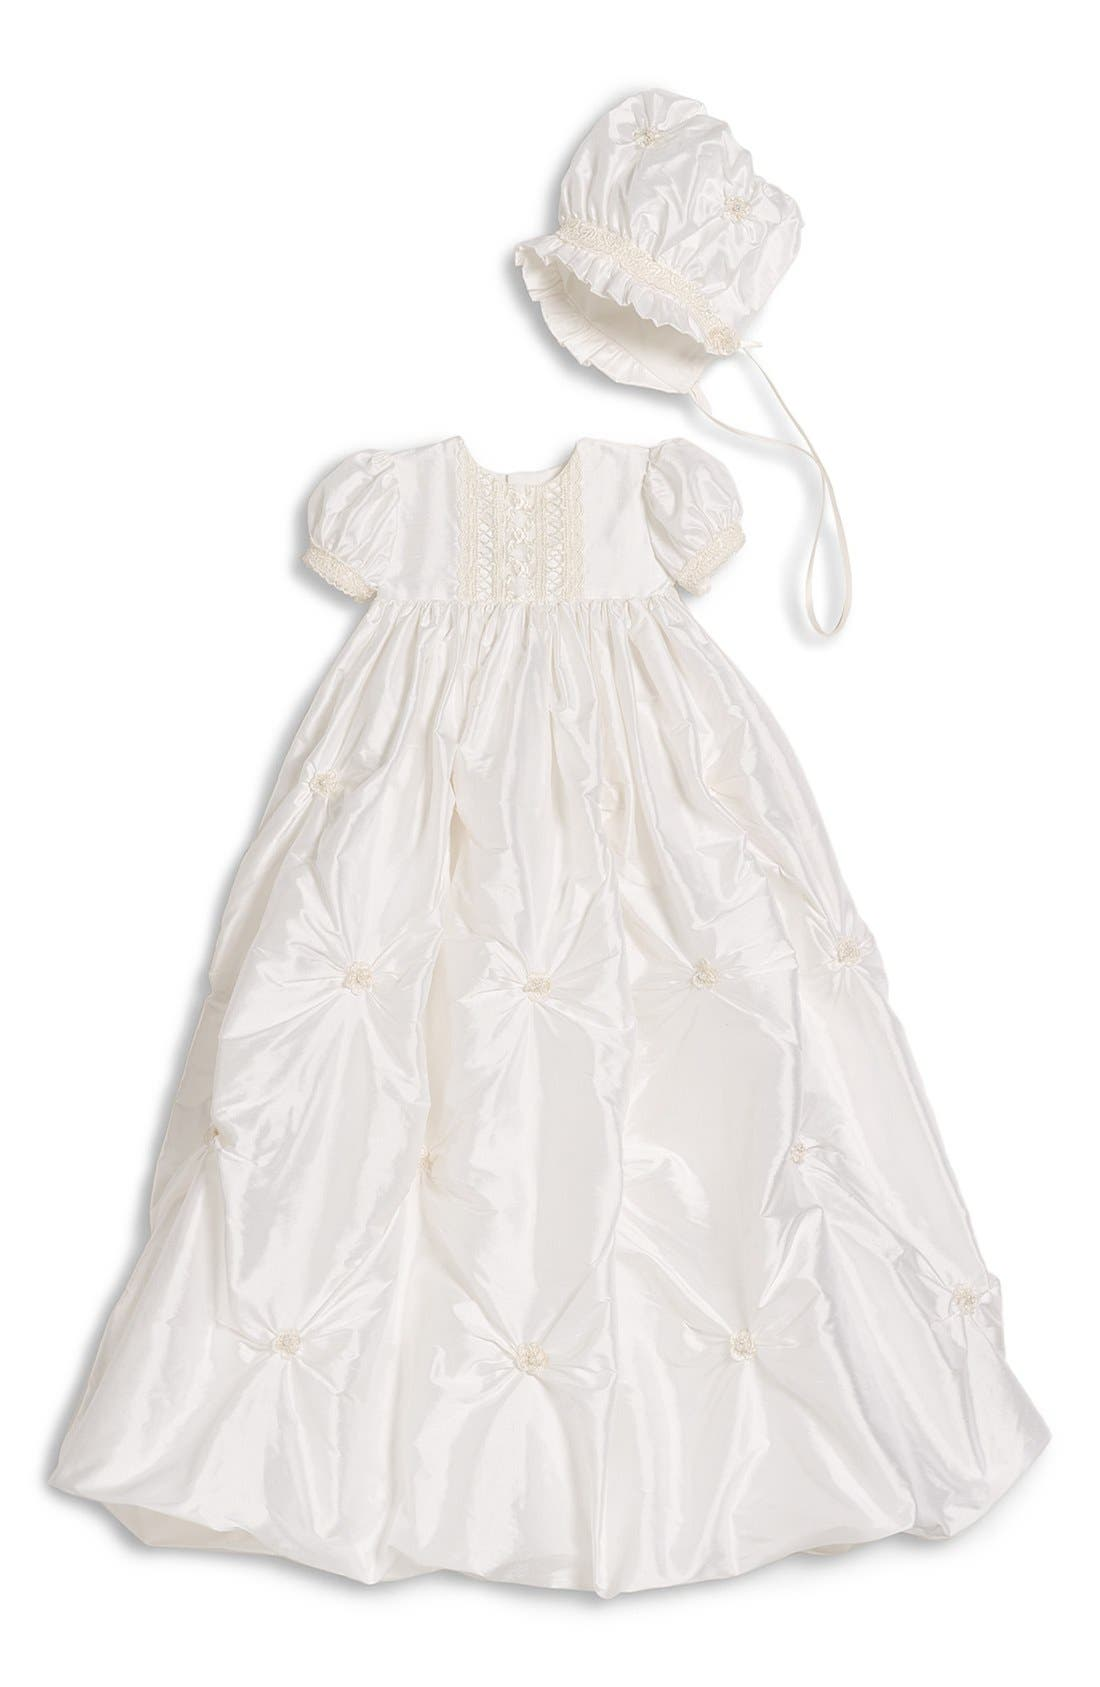 Alternate Image 1 Selected - Little Things Mean a Lot Princess Gown (Baby)